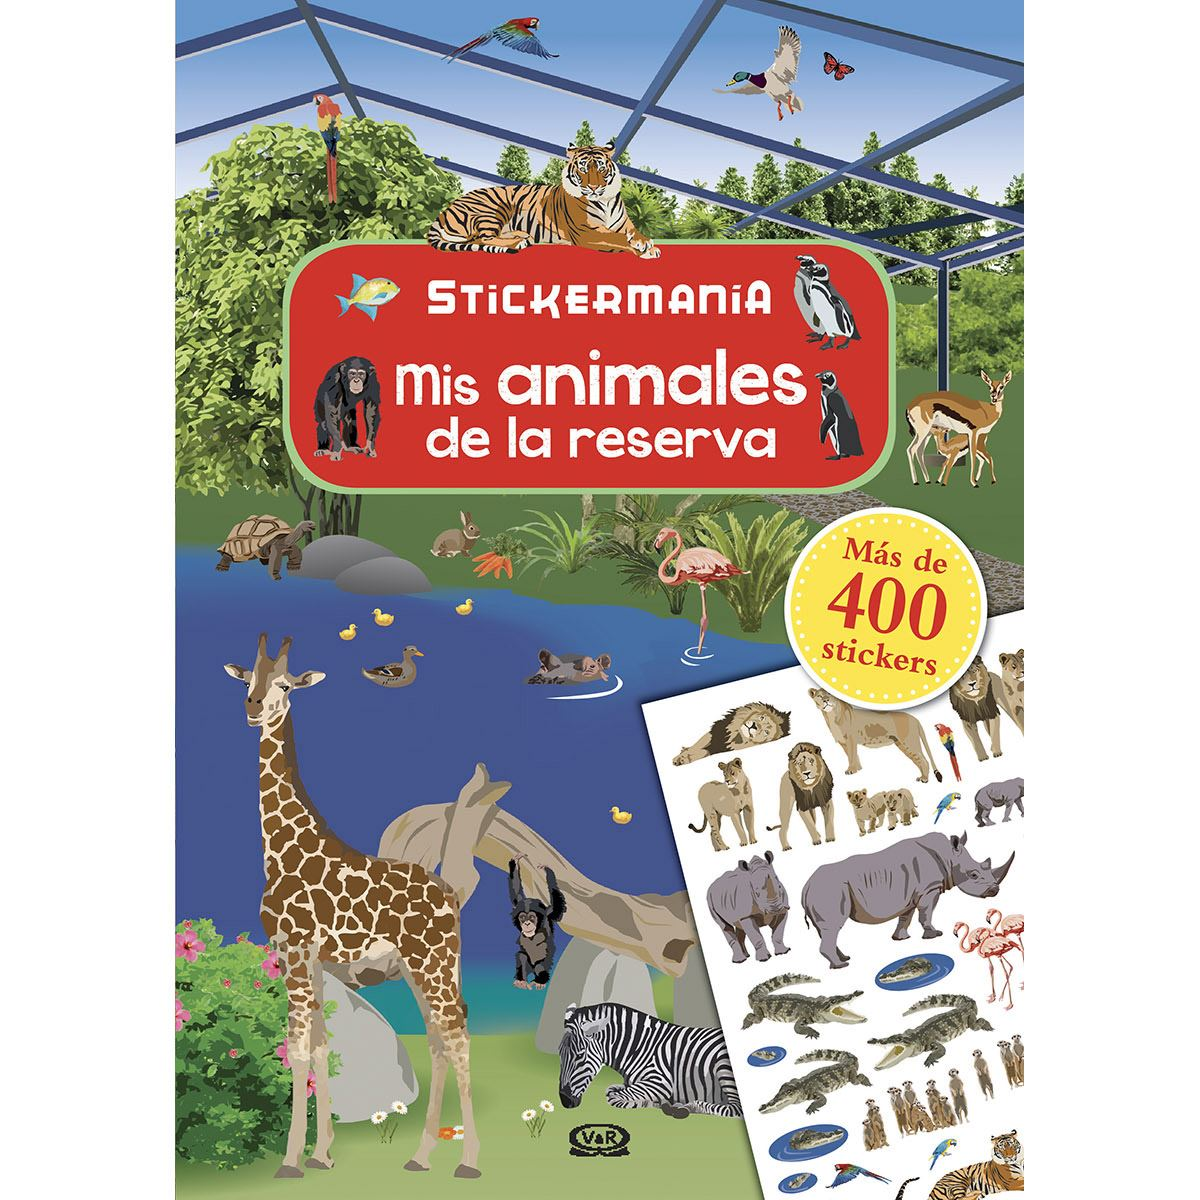 Mis animales de la reserva stickermanía Libro - Sanborns